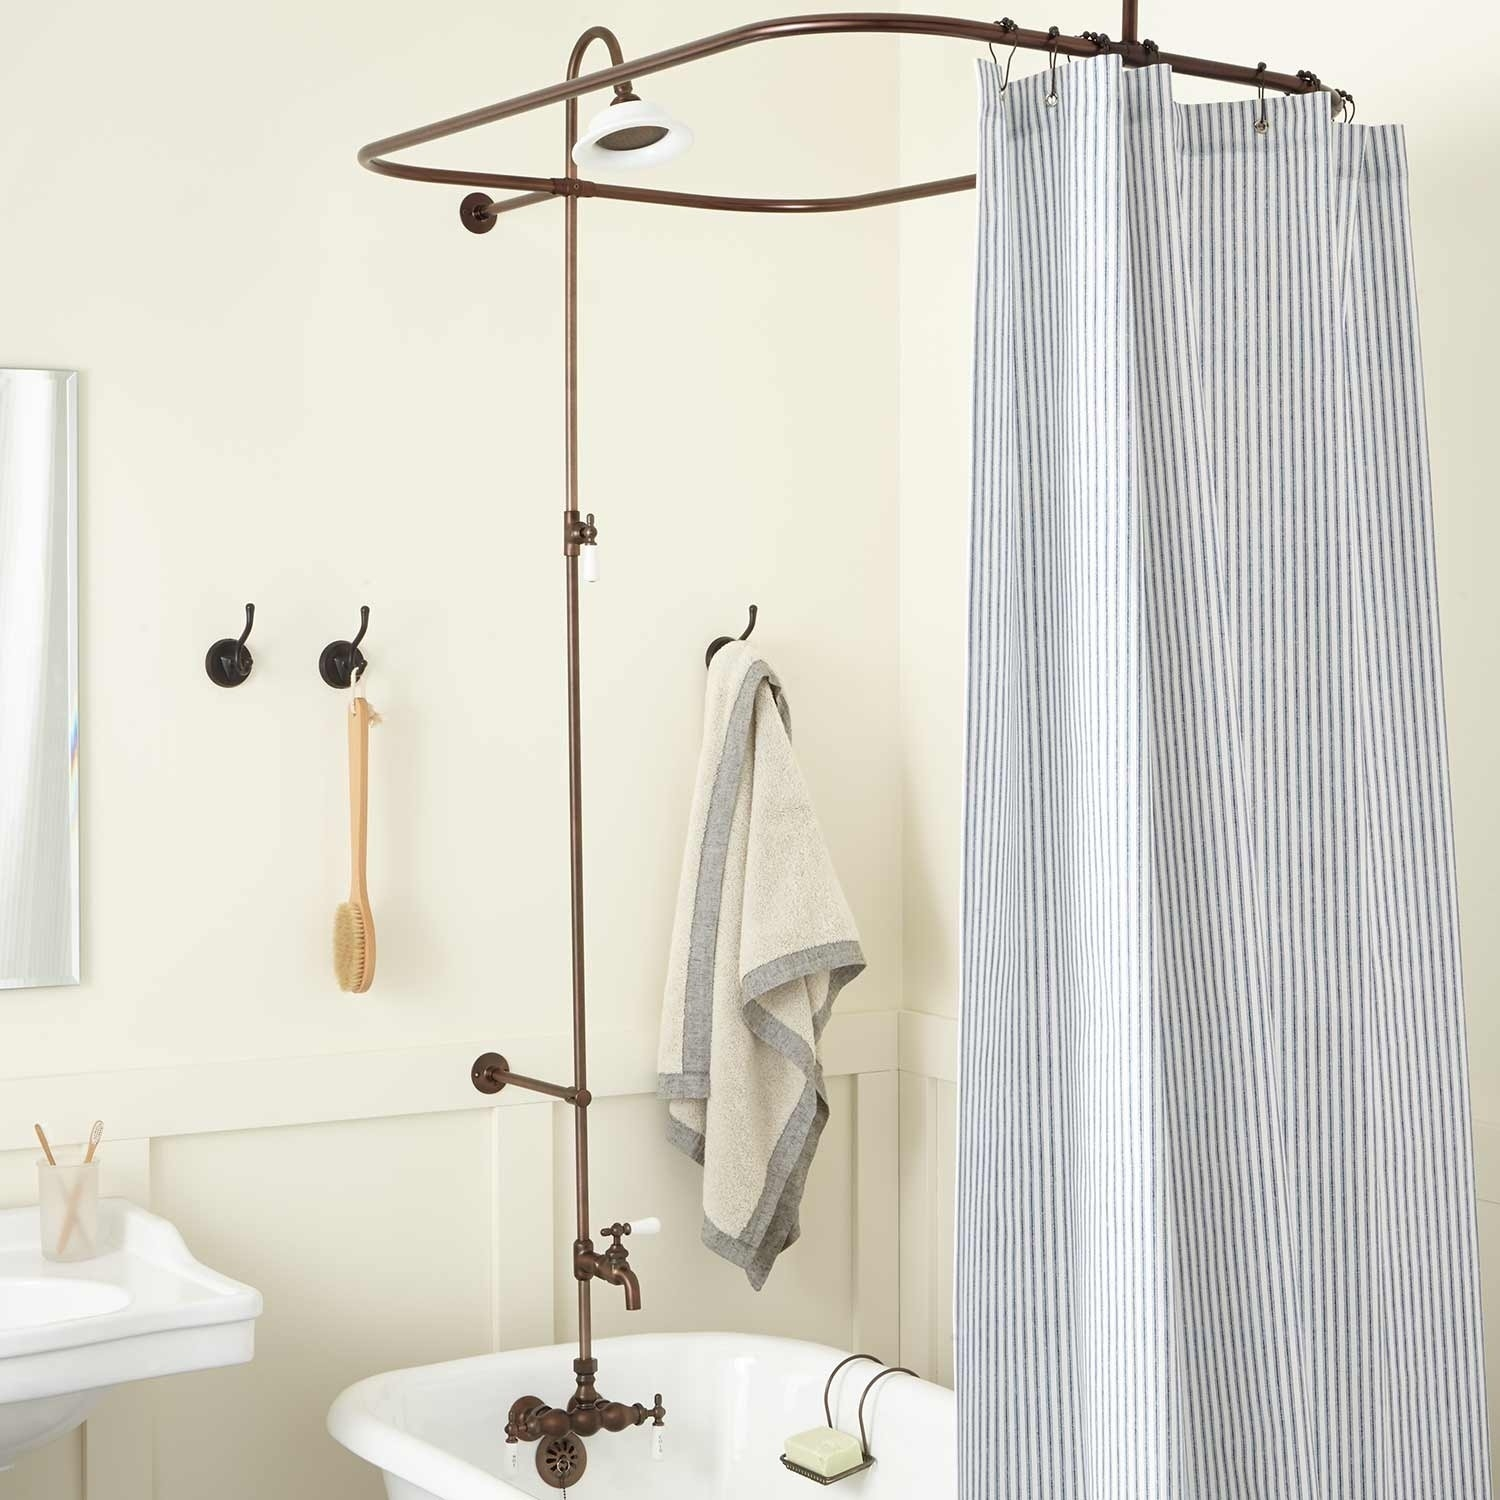 Clawfoot Tub Shower Curtain Rods Signature Hardware Inside Shower Curtains For Clawfoot Tubs (Image 12 of 25)